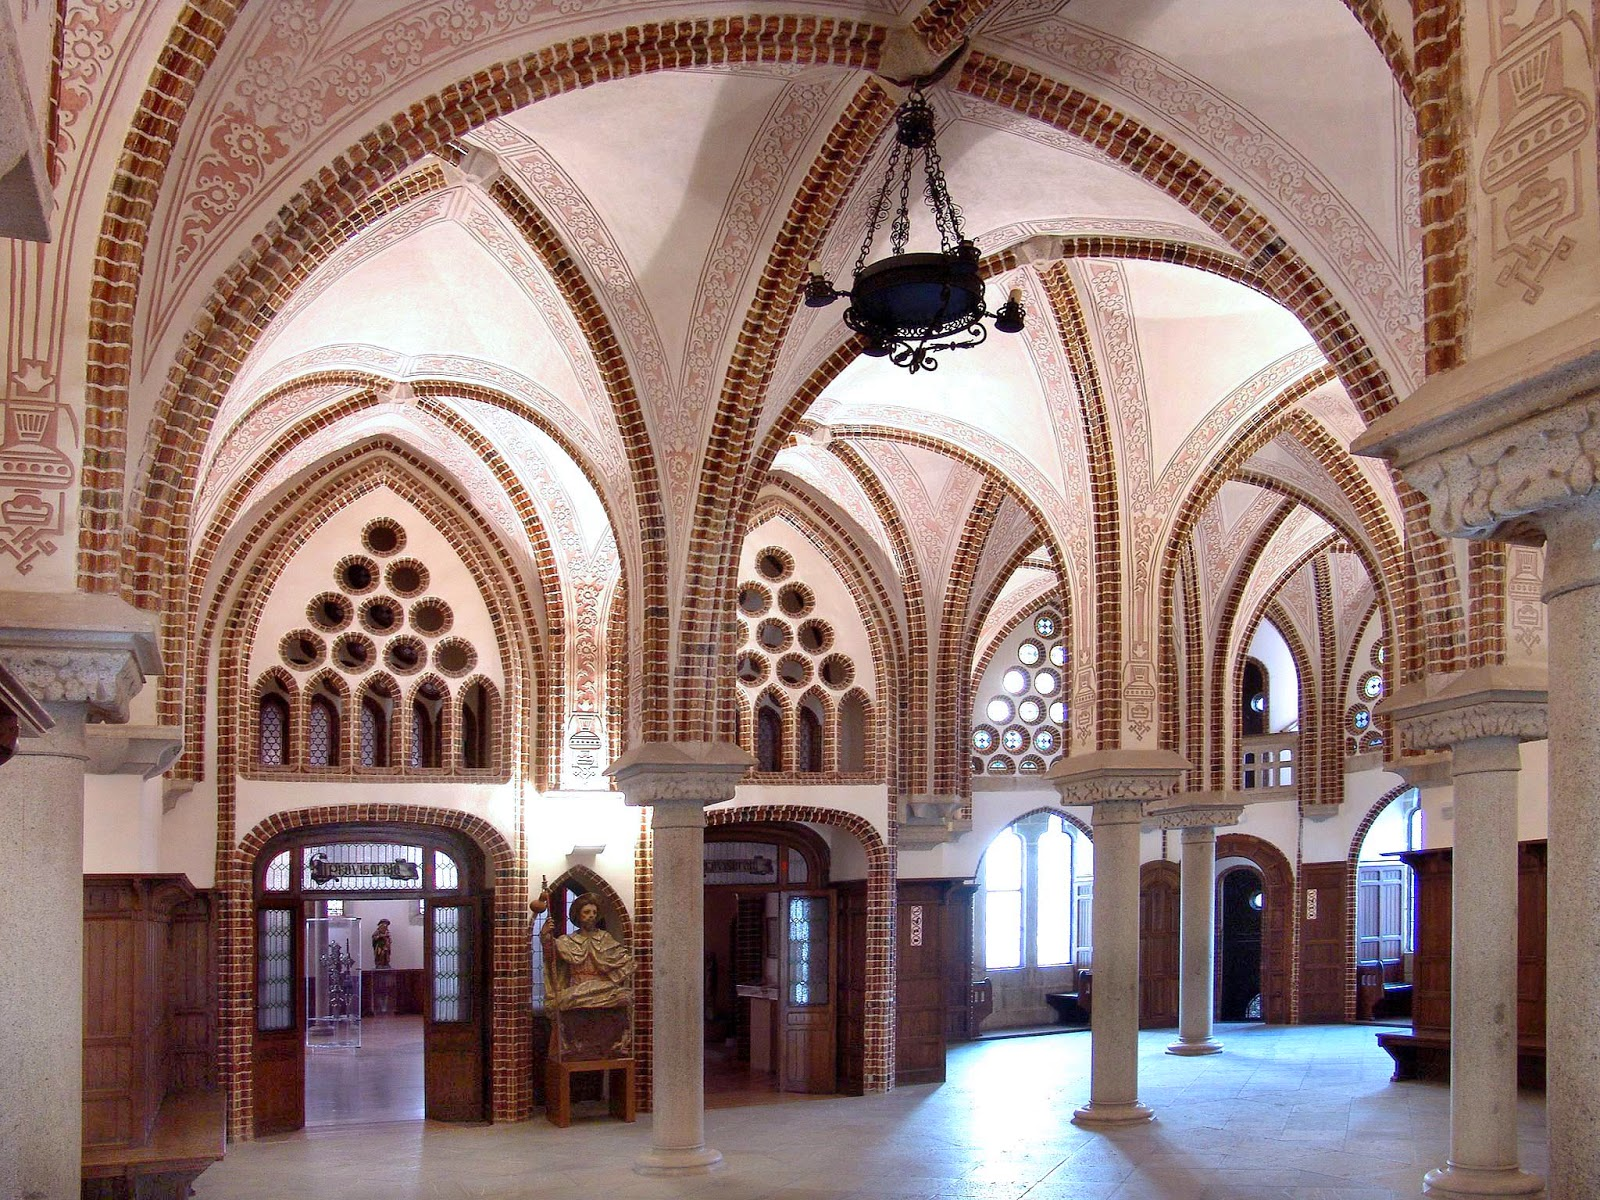 Episcopal Palace, Antoní Gaudi - León, Spain